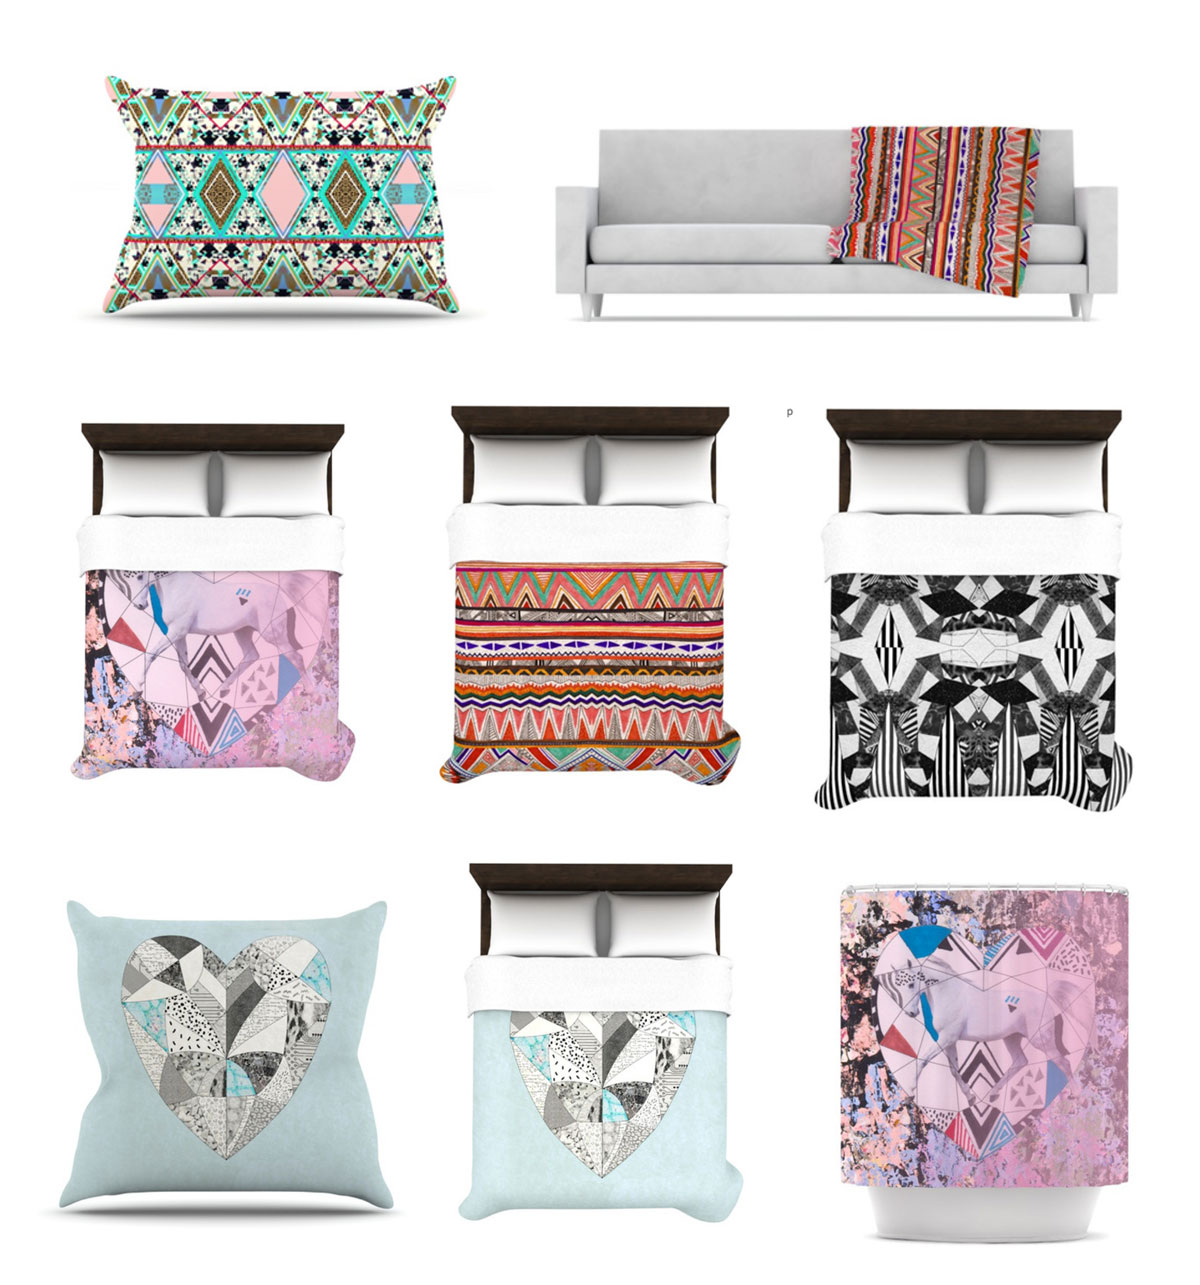 Kess in house home decor products interior style bedroom for Aztec bedroom ideas